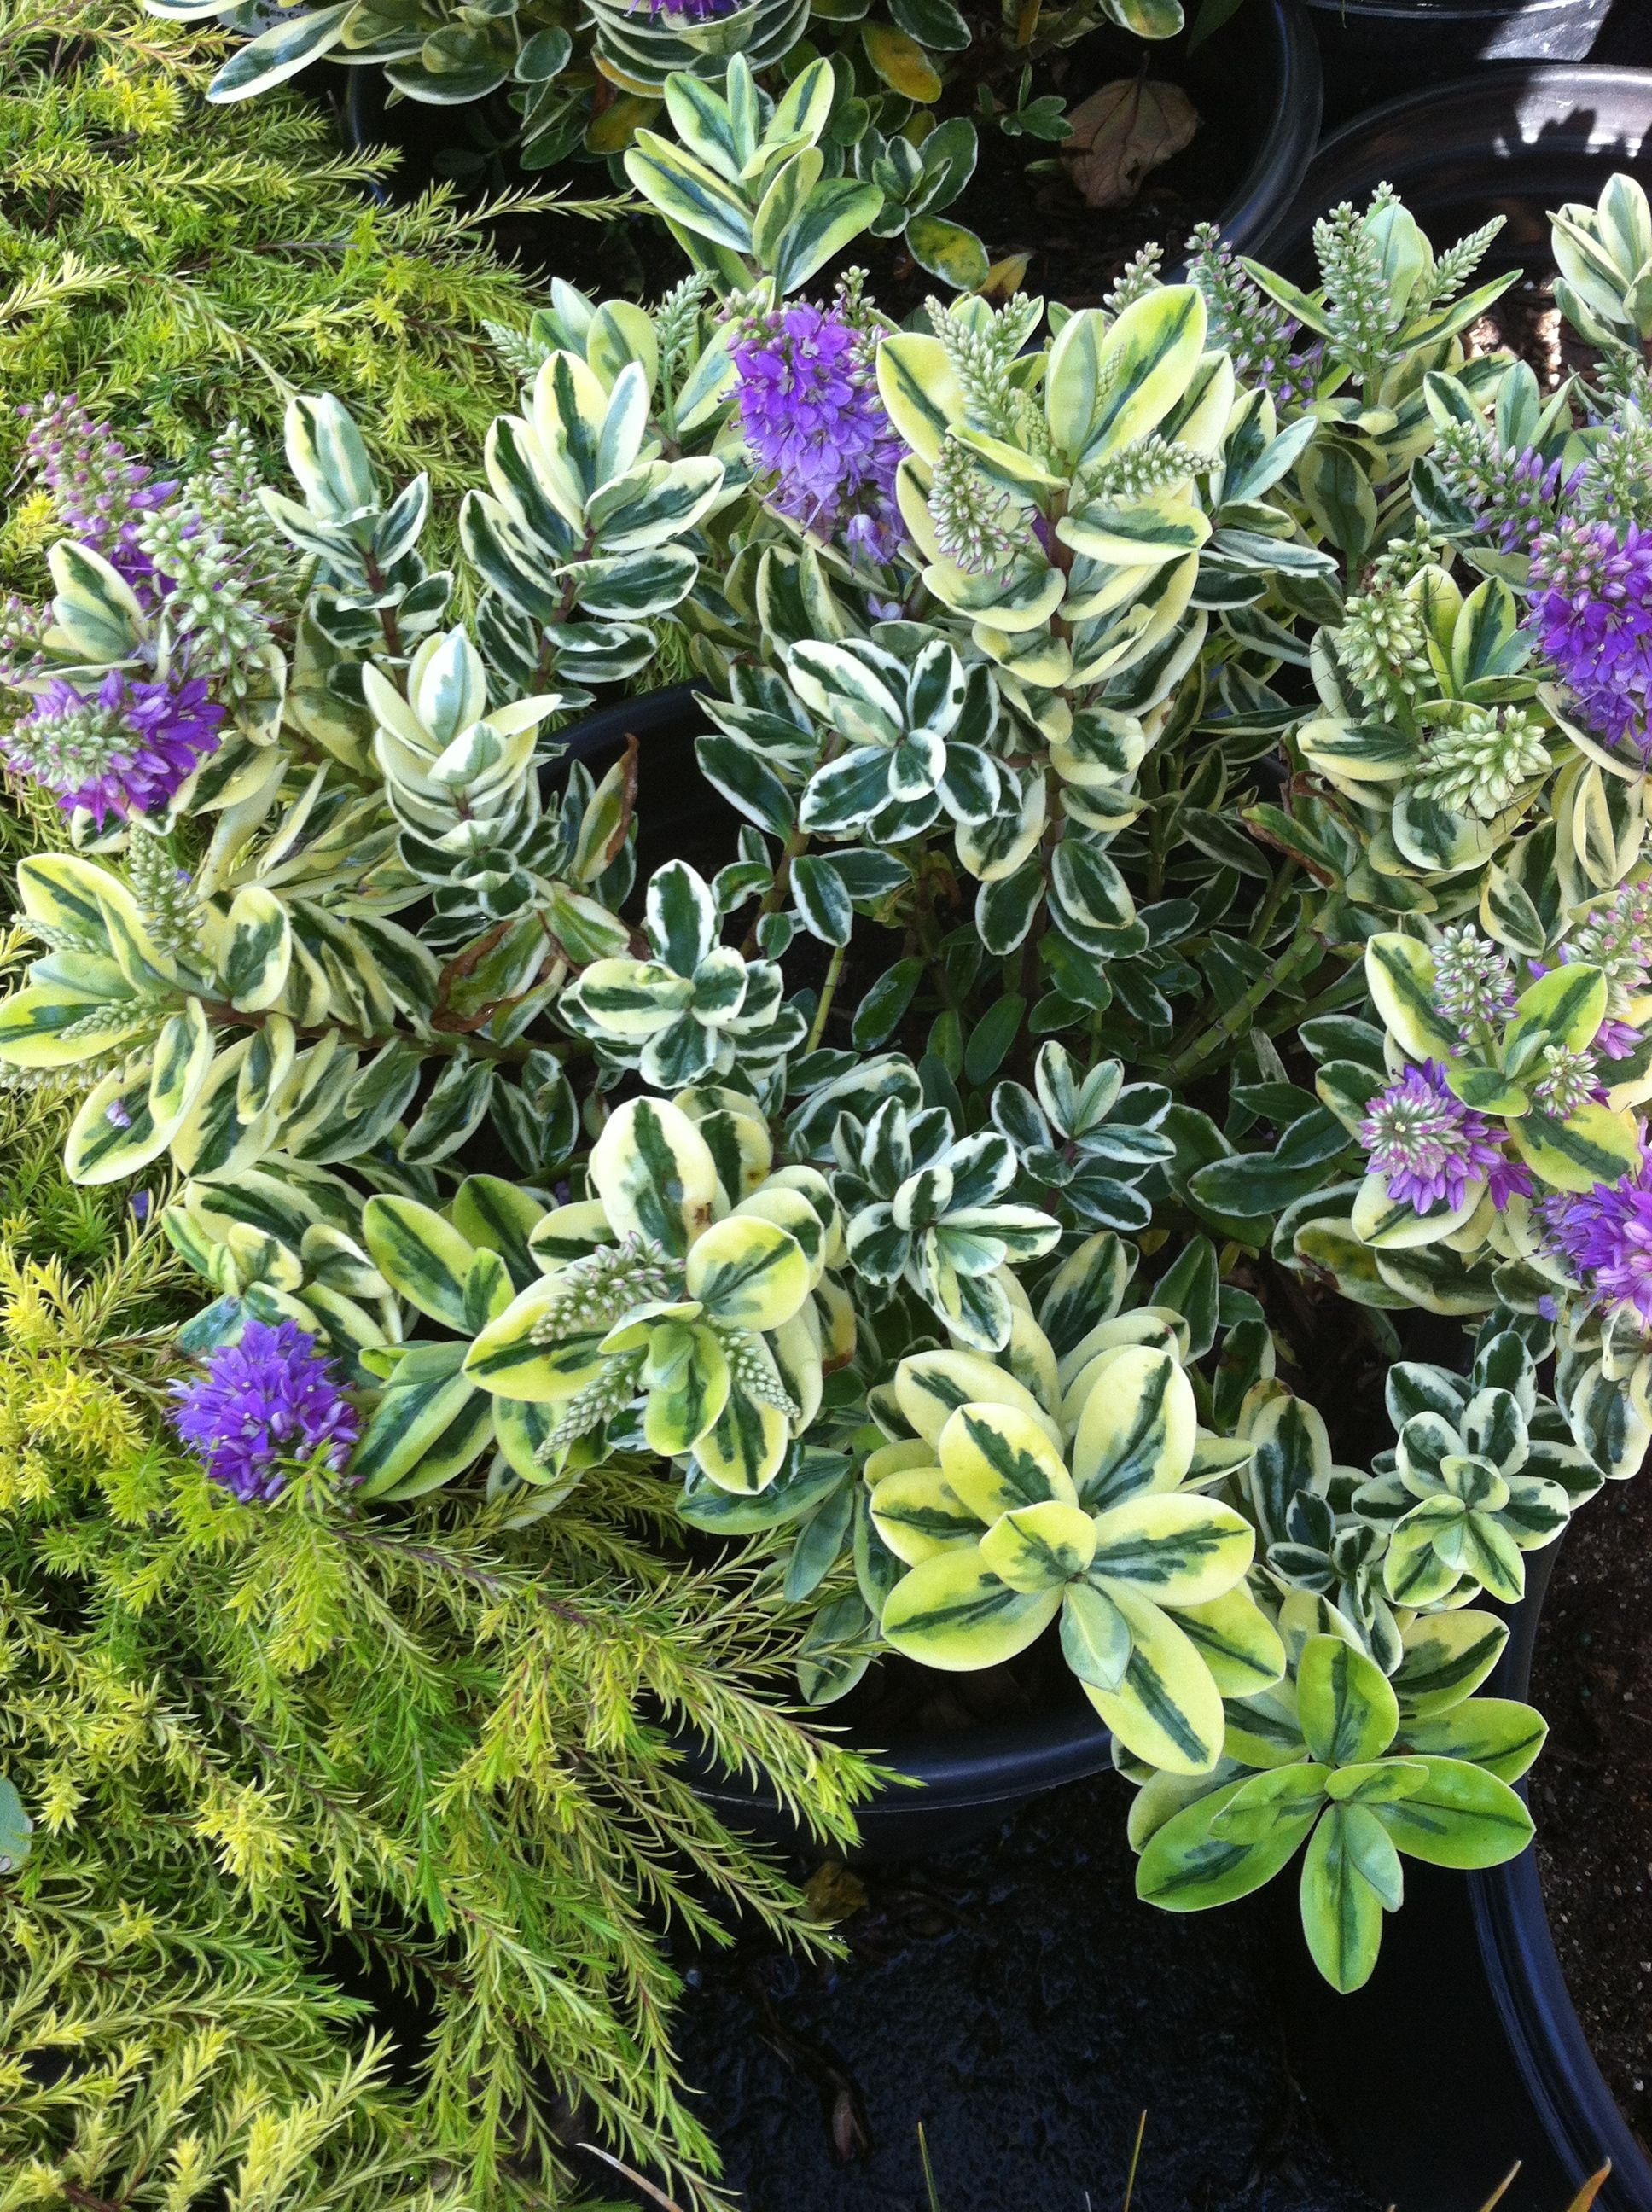 Hebe Variegated Shrub With Blue Flowers To Replace Boxwoods In Front